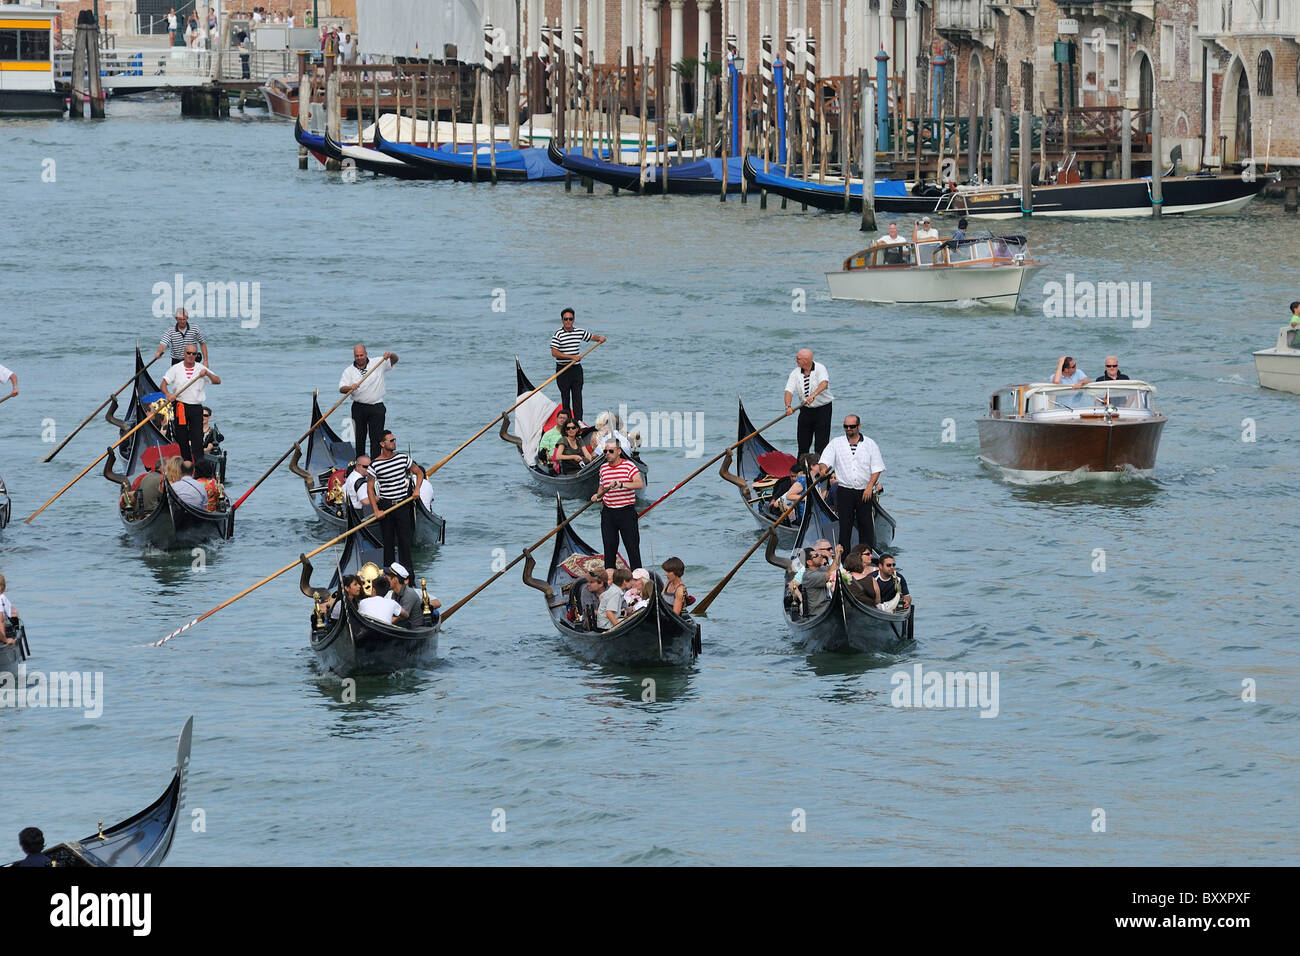 Venice. Italy. Groups of tourists in gondolas on the Grand Canal. - Stock Image